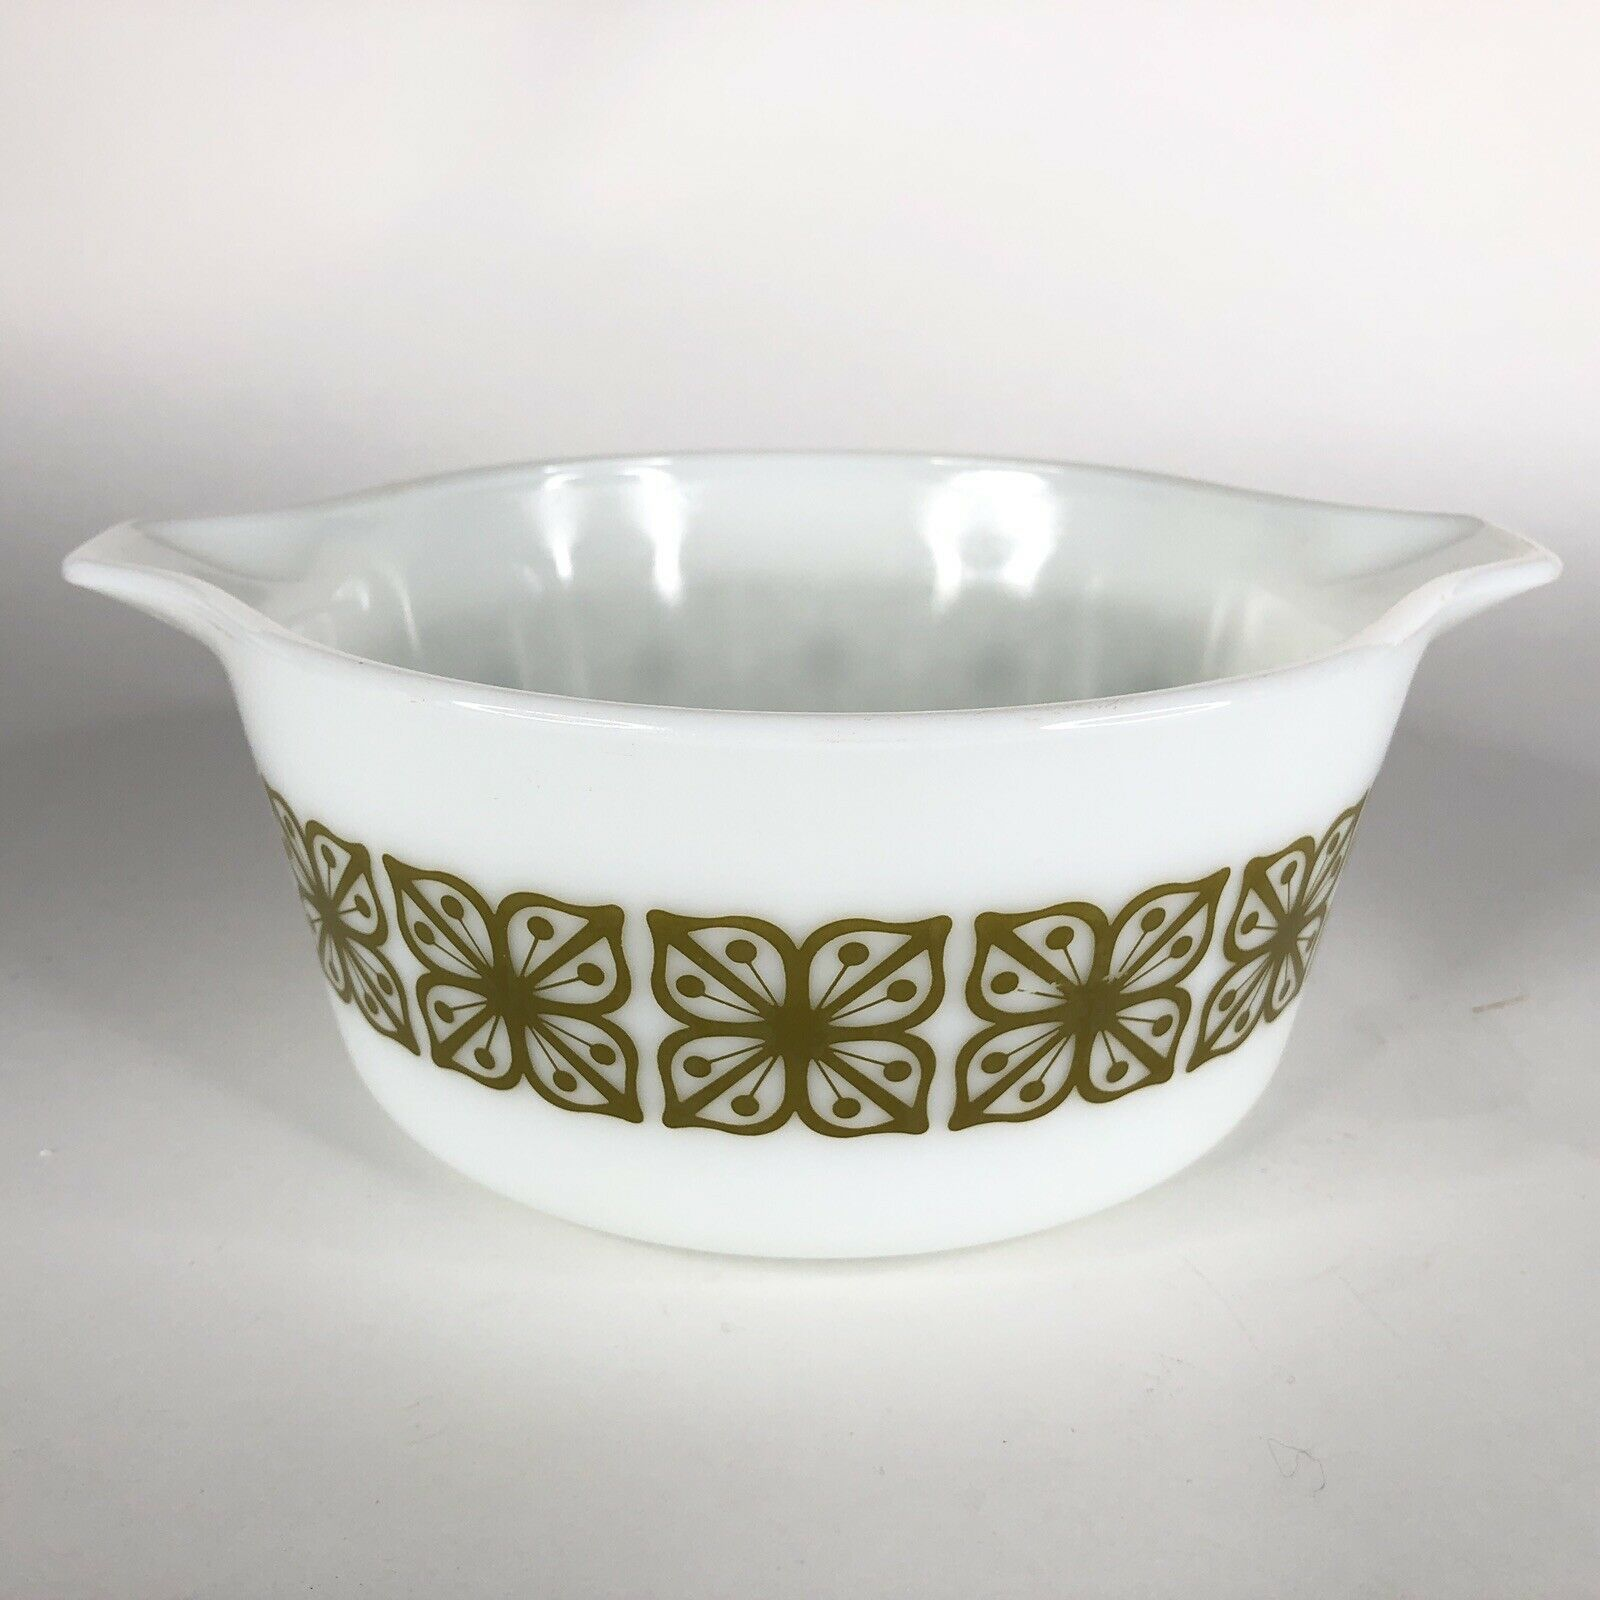 Pyrex Verde Square Green Flower Casserole Dish 474 B Covered Baking 1.5 Quart QT image 5